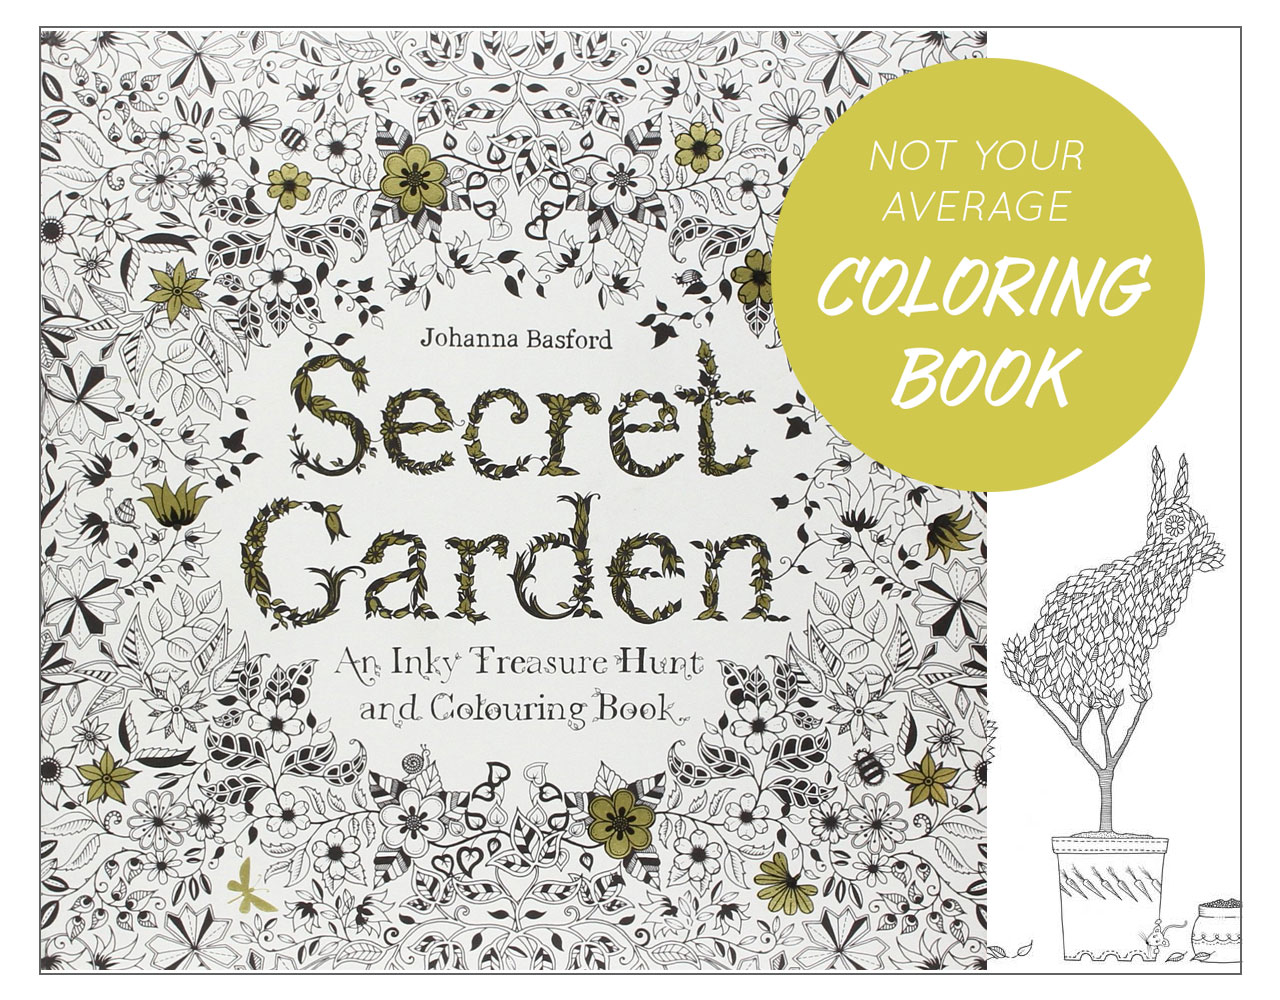 Not Your Average Coloring Book